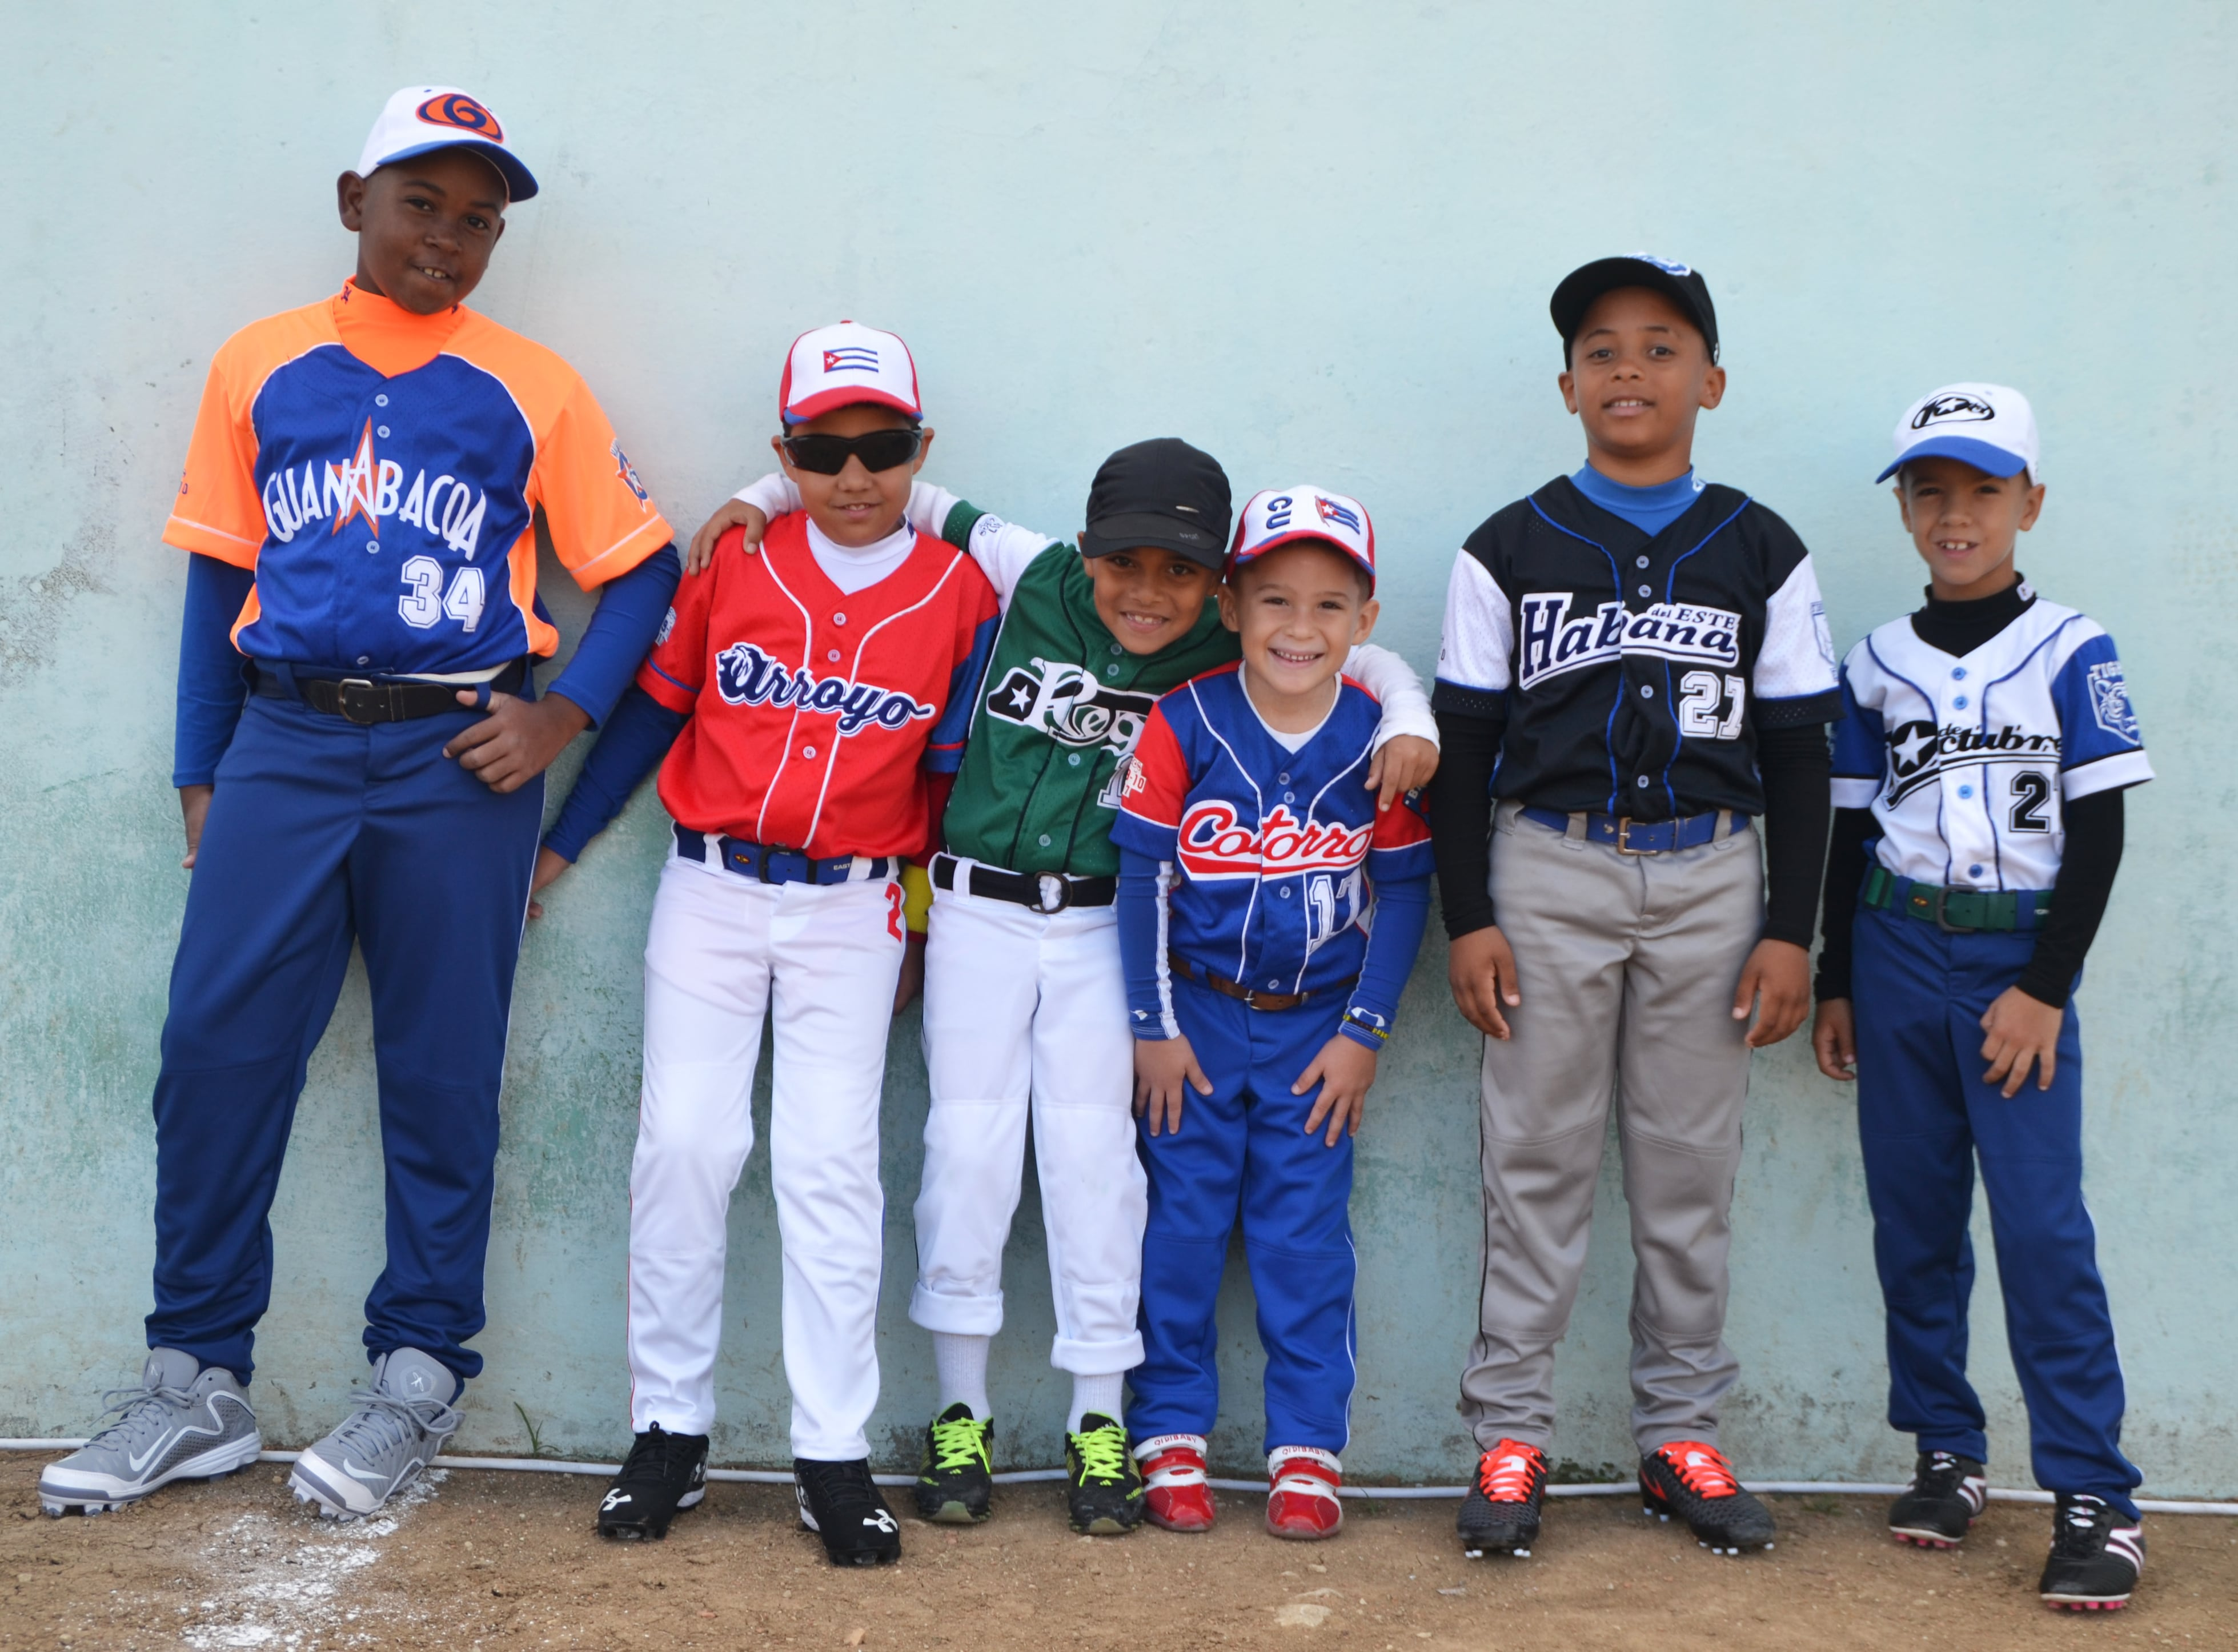 Chueco, the Company that Clothes the Future Stars of Cuban baseball